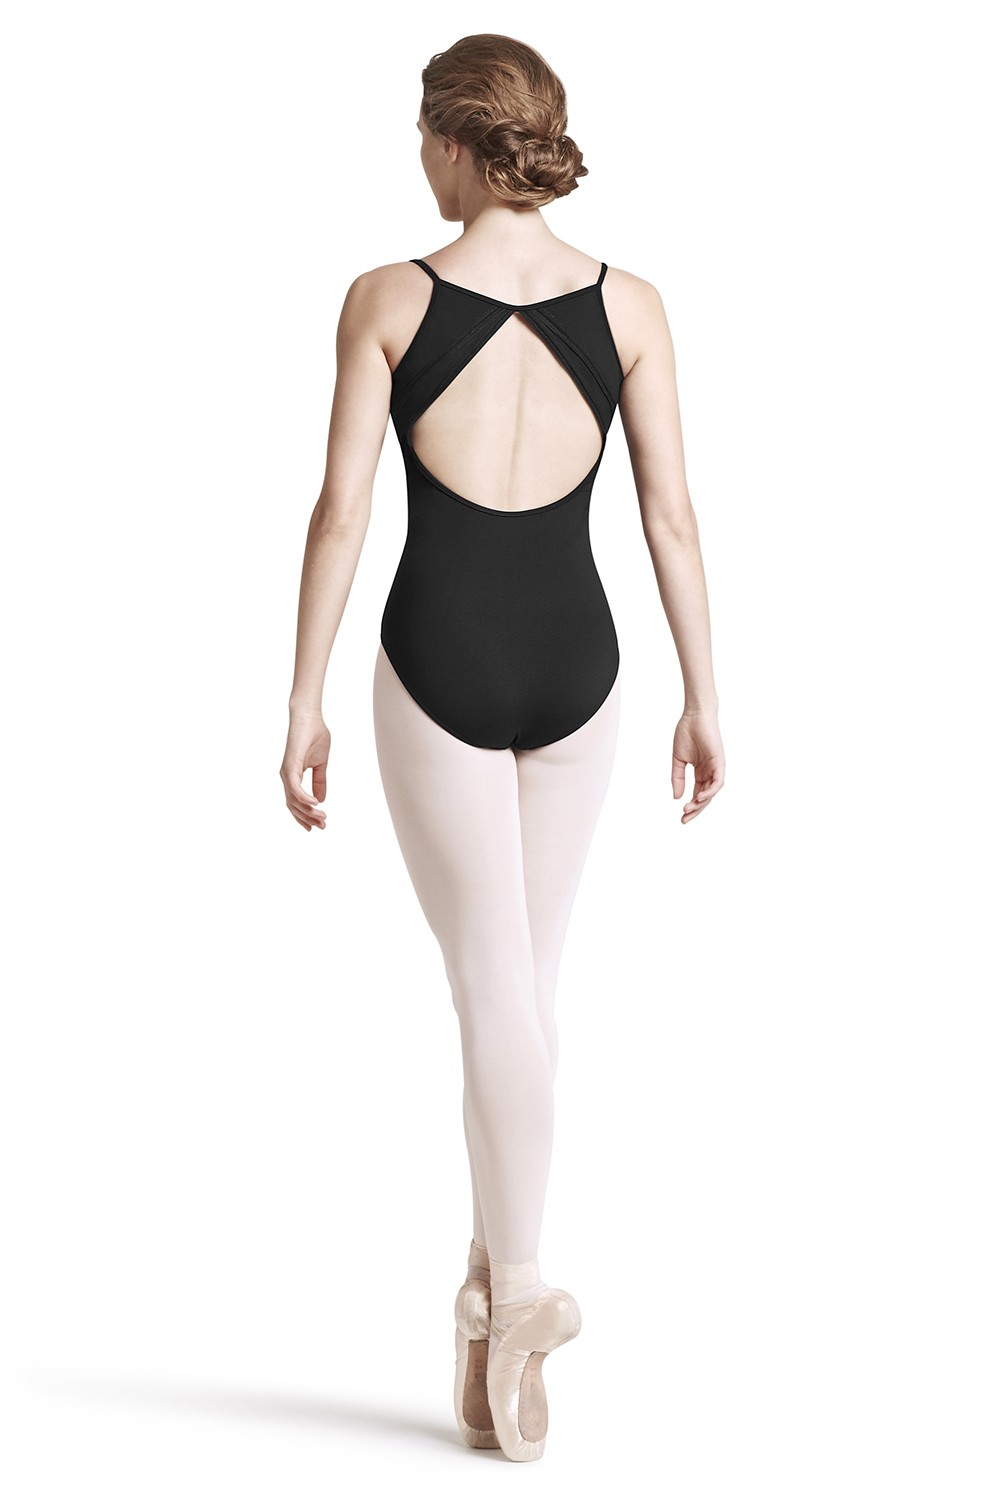 Ambara Womens Camisole Leotards